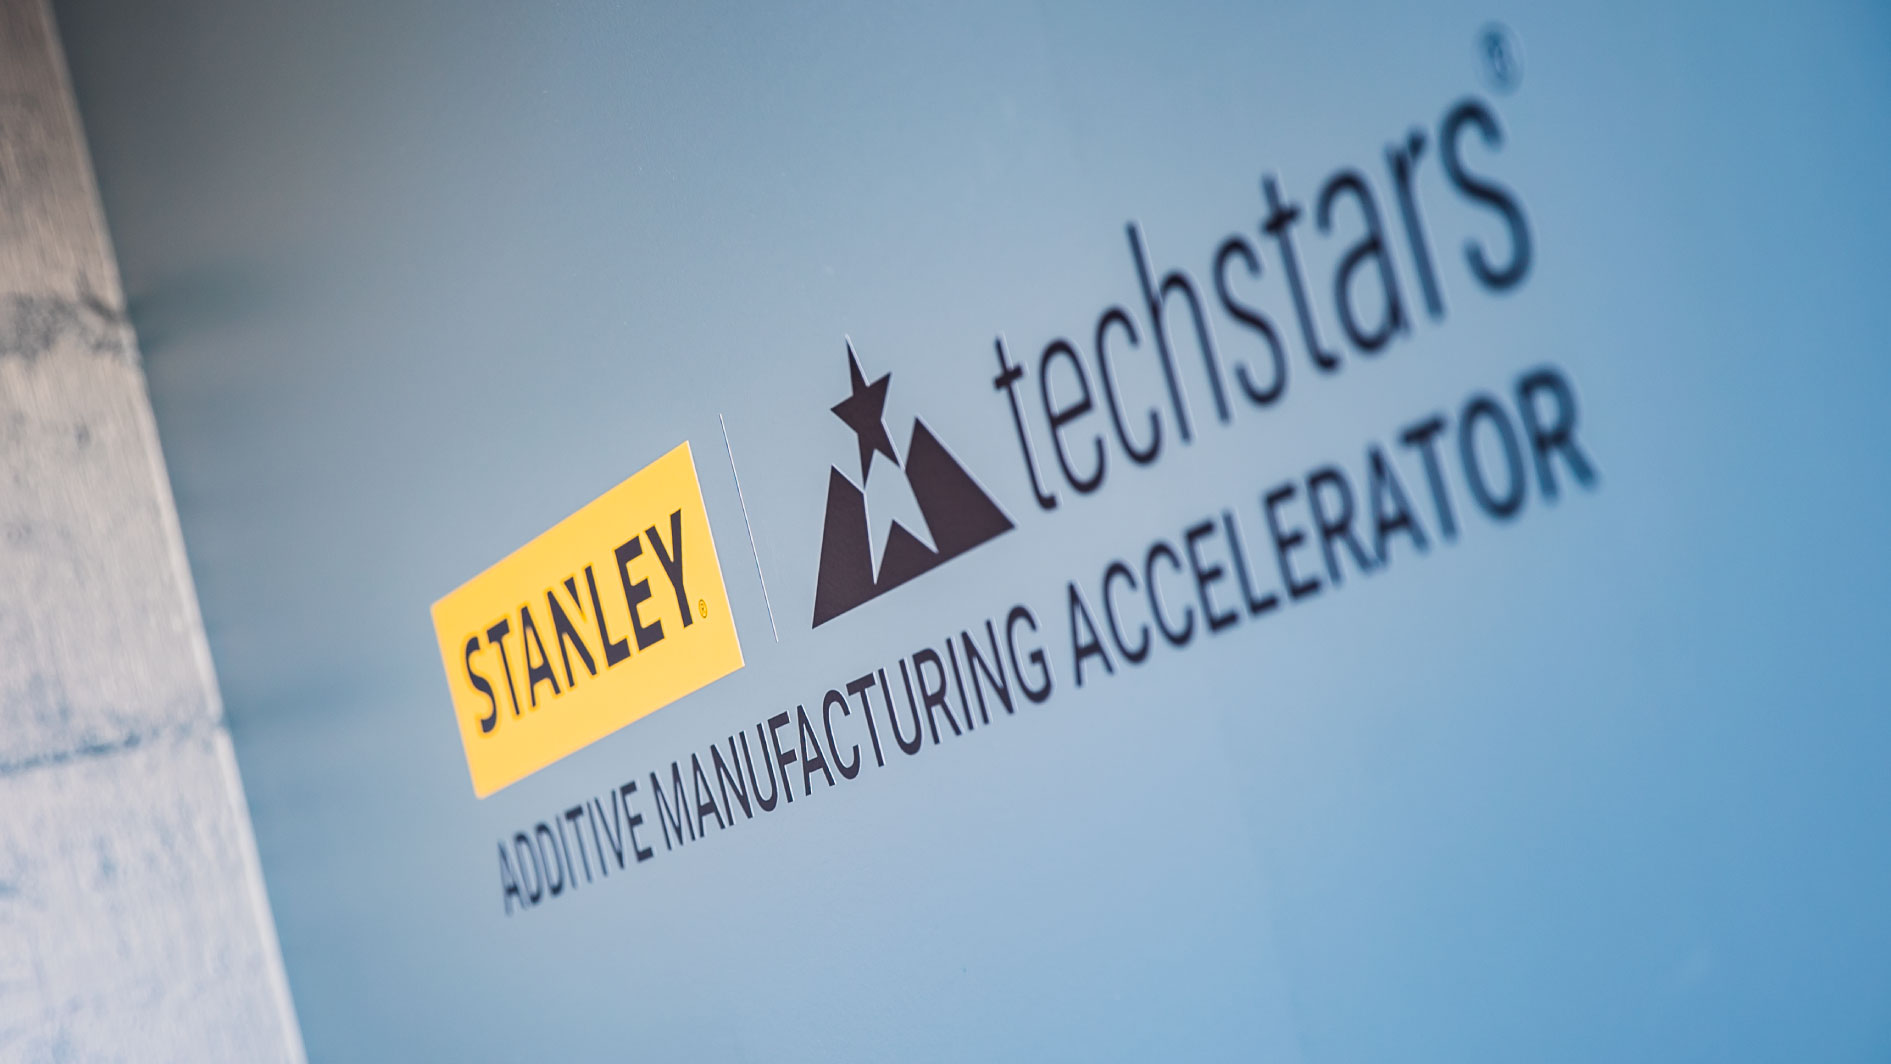 STANLEY and Techstars Additive Manufacturing Accelerator